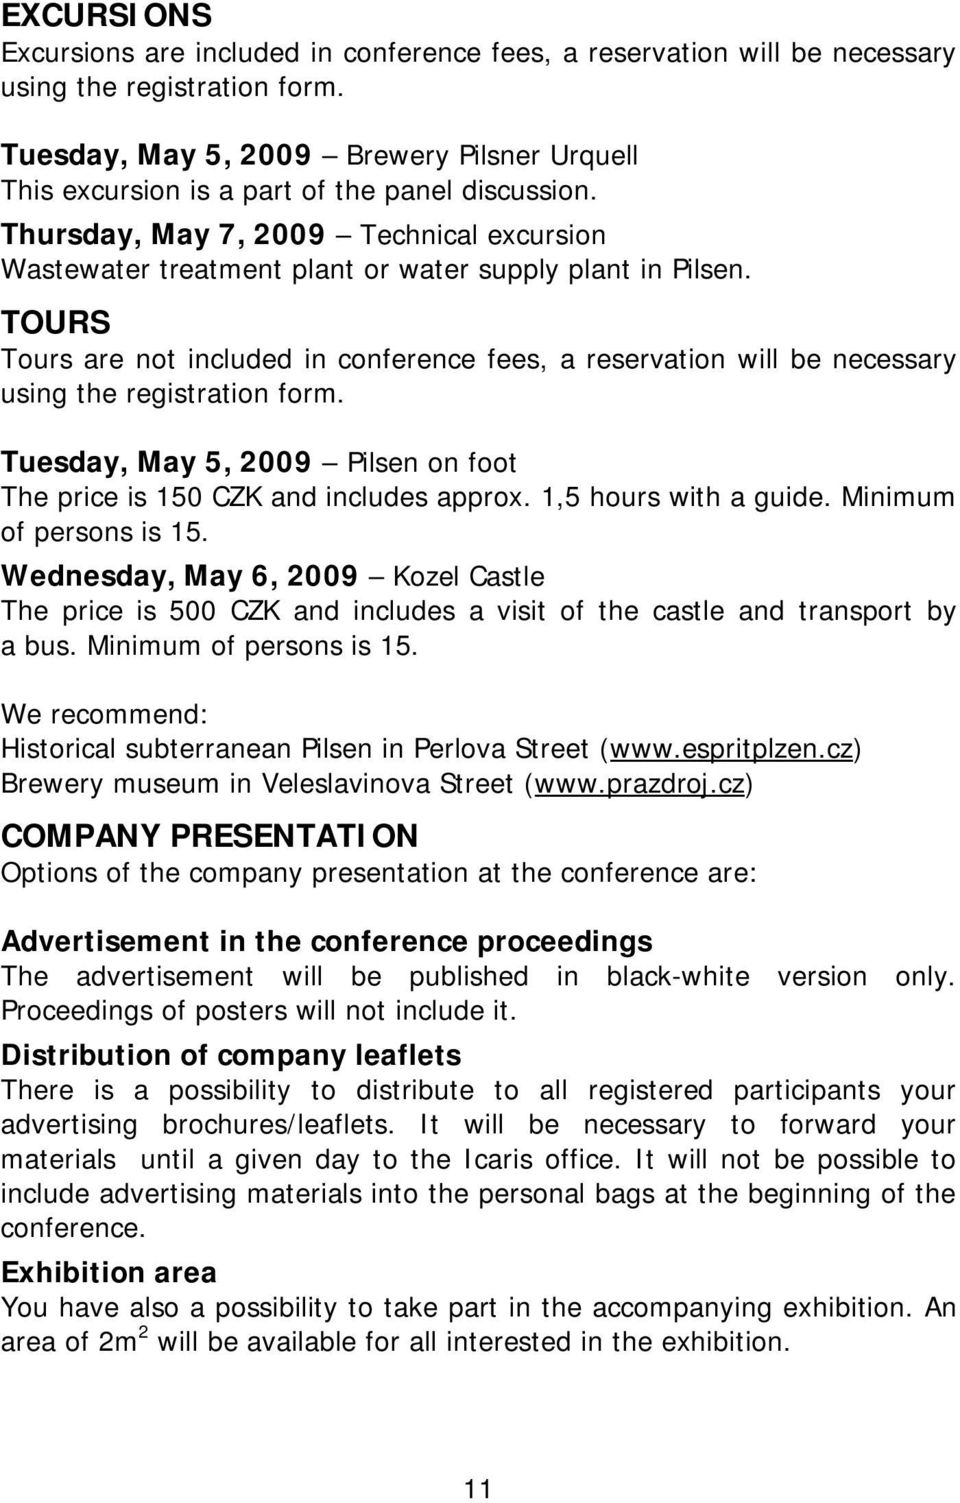 TOURS Tours are not included in conference fees, a reservation will be necessary using the registration form. Tuesday, May 5, 2009 Pilsen on foot The price is 150 CZK and includes approx.